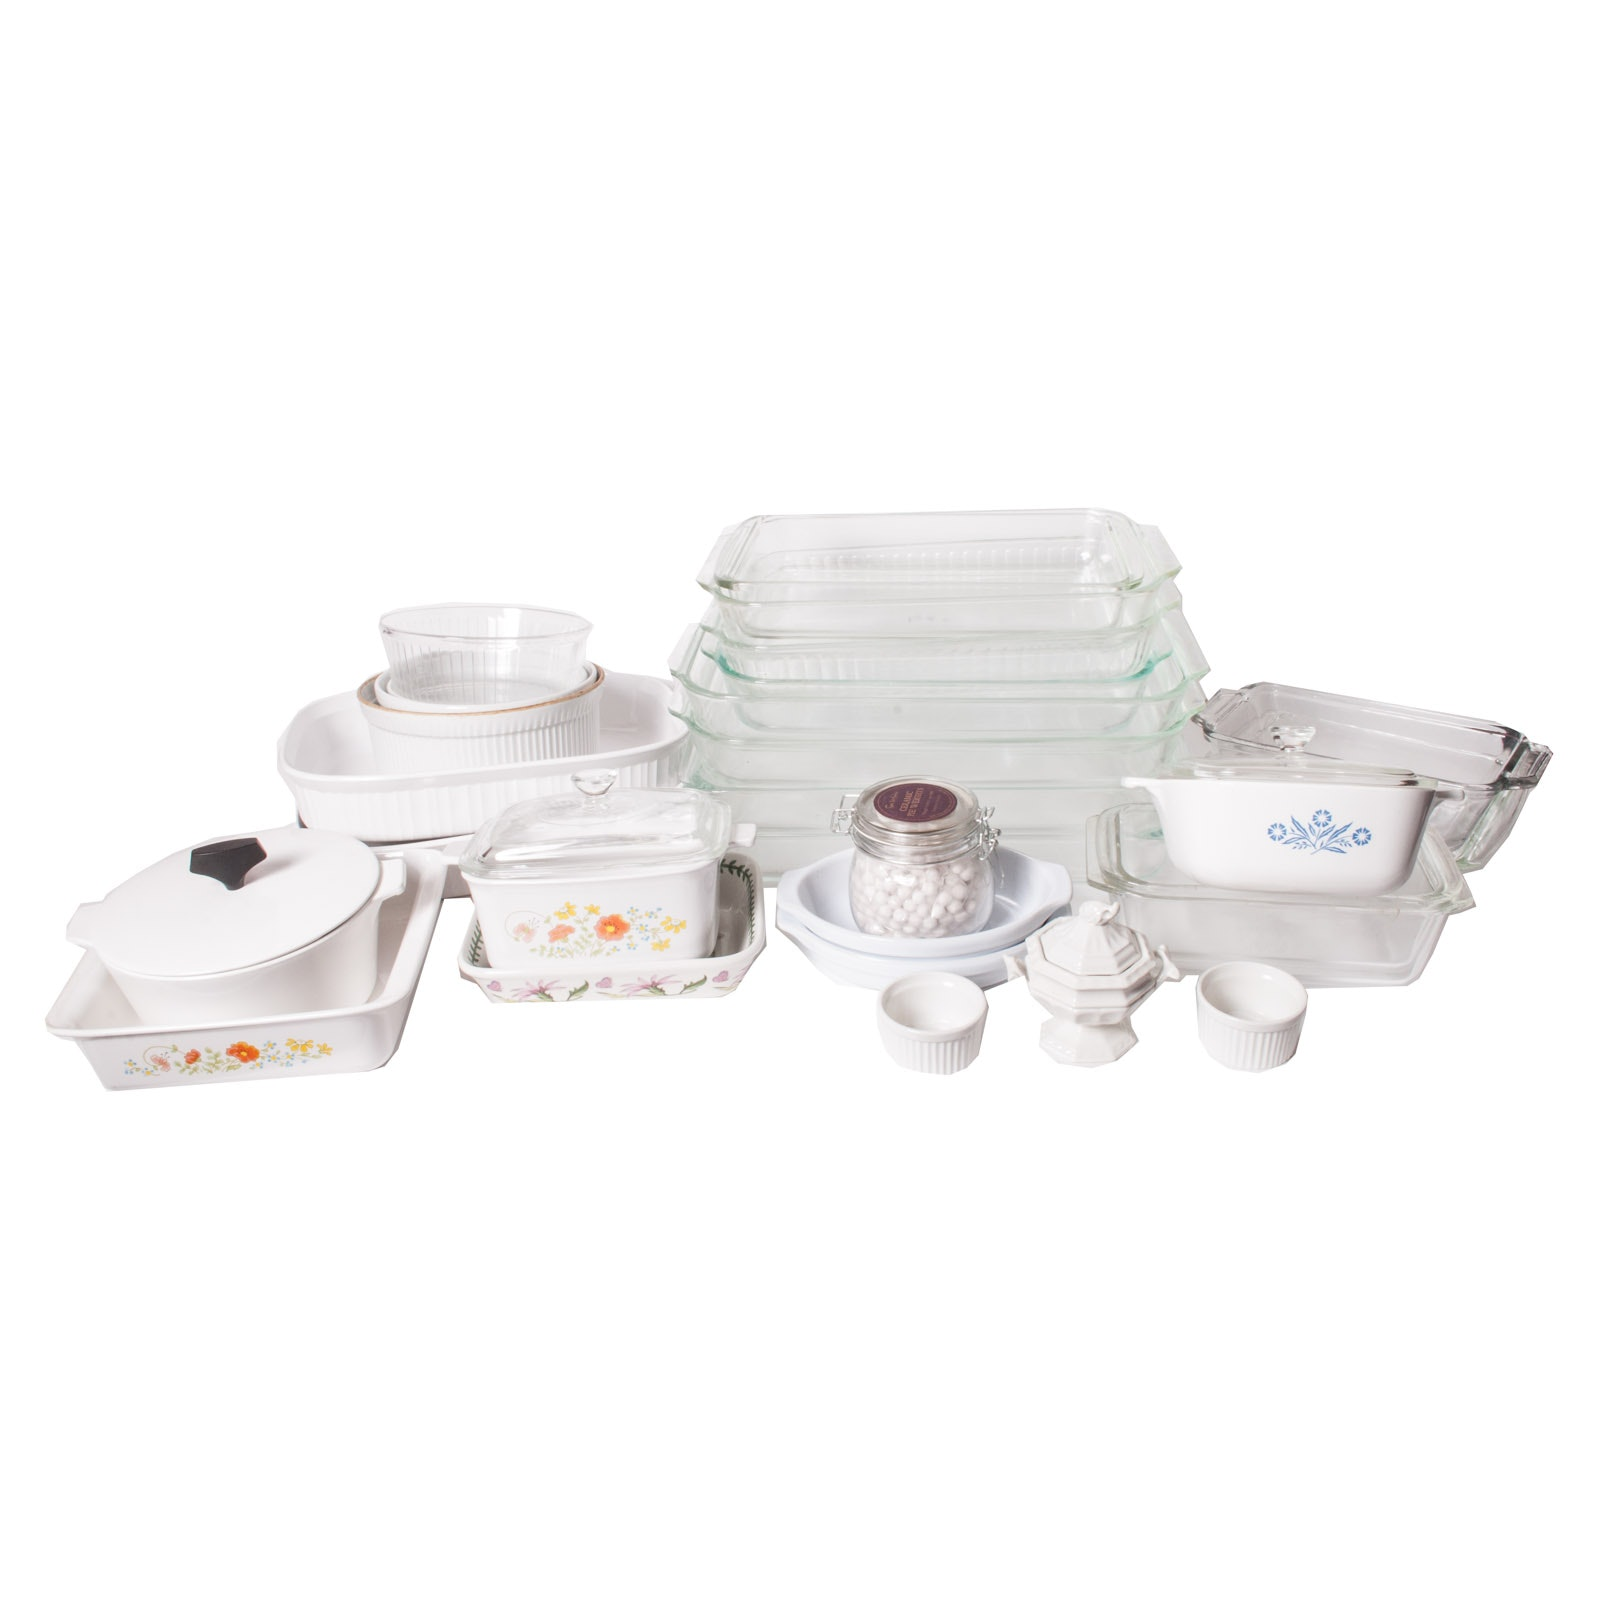 Bakeware Including Pyrex, Vintage CorningWare and Anchor Hocking